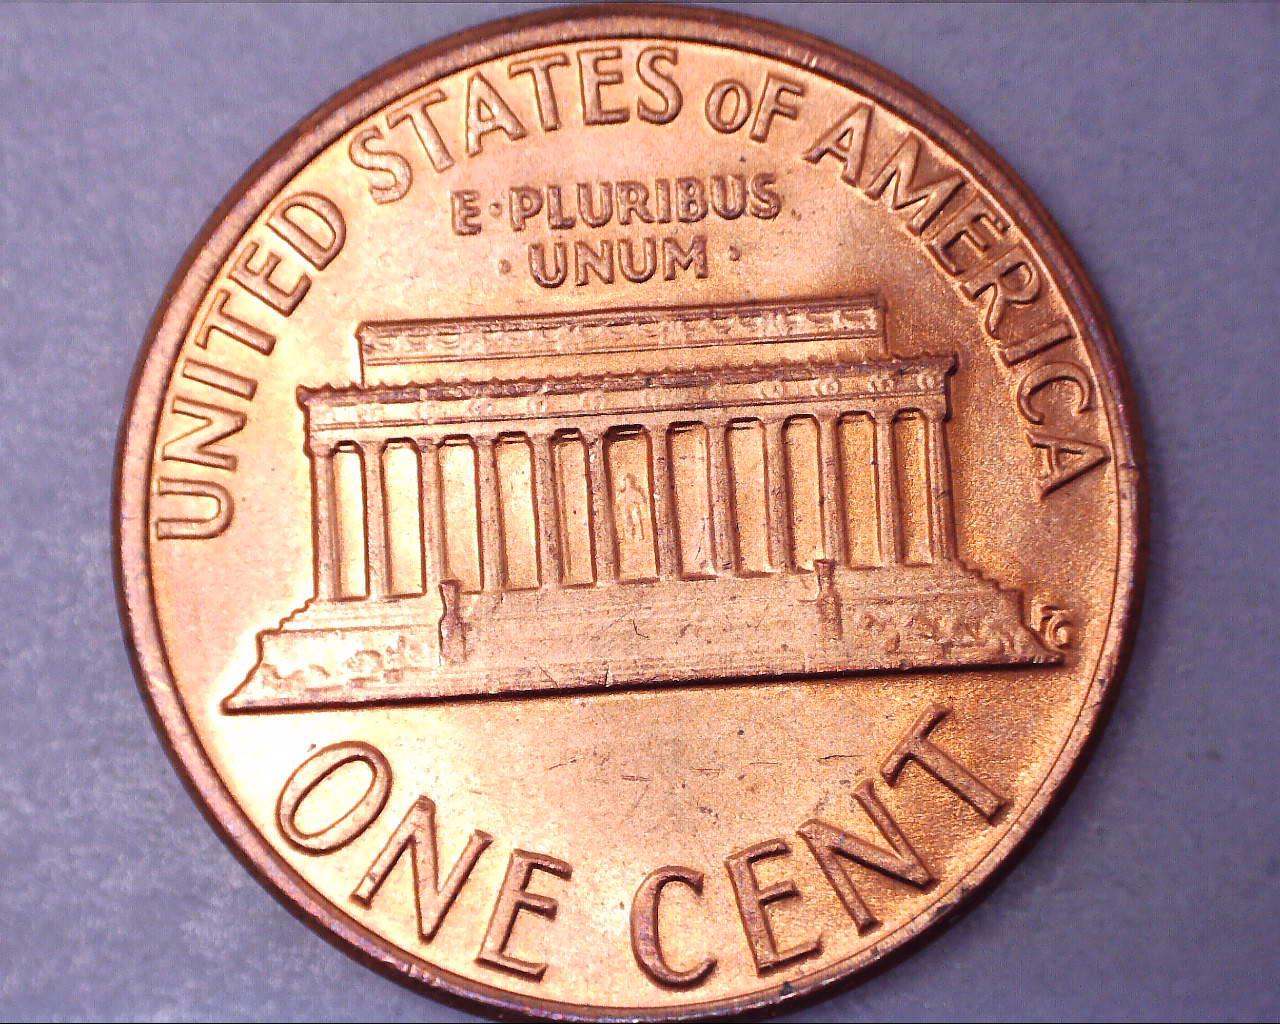 1979 p penny please help grading? - Coin Community Forum